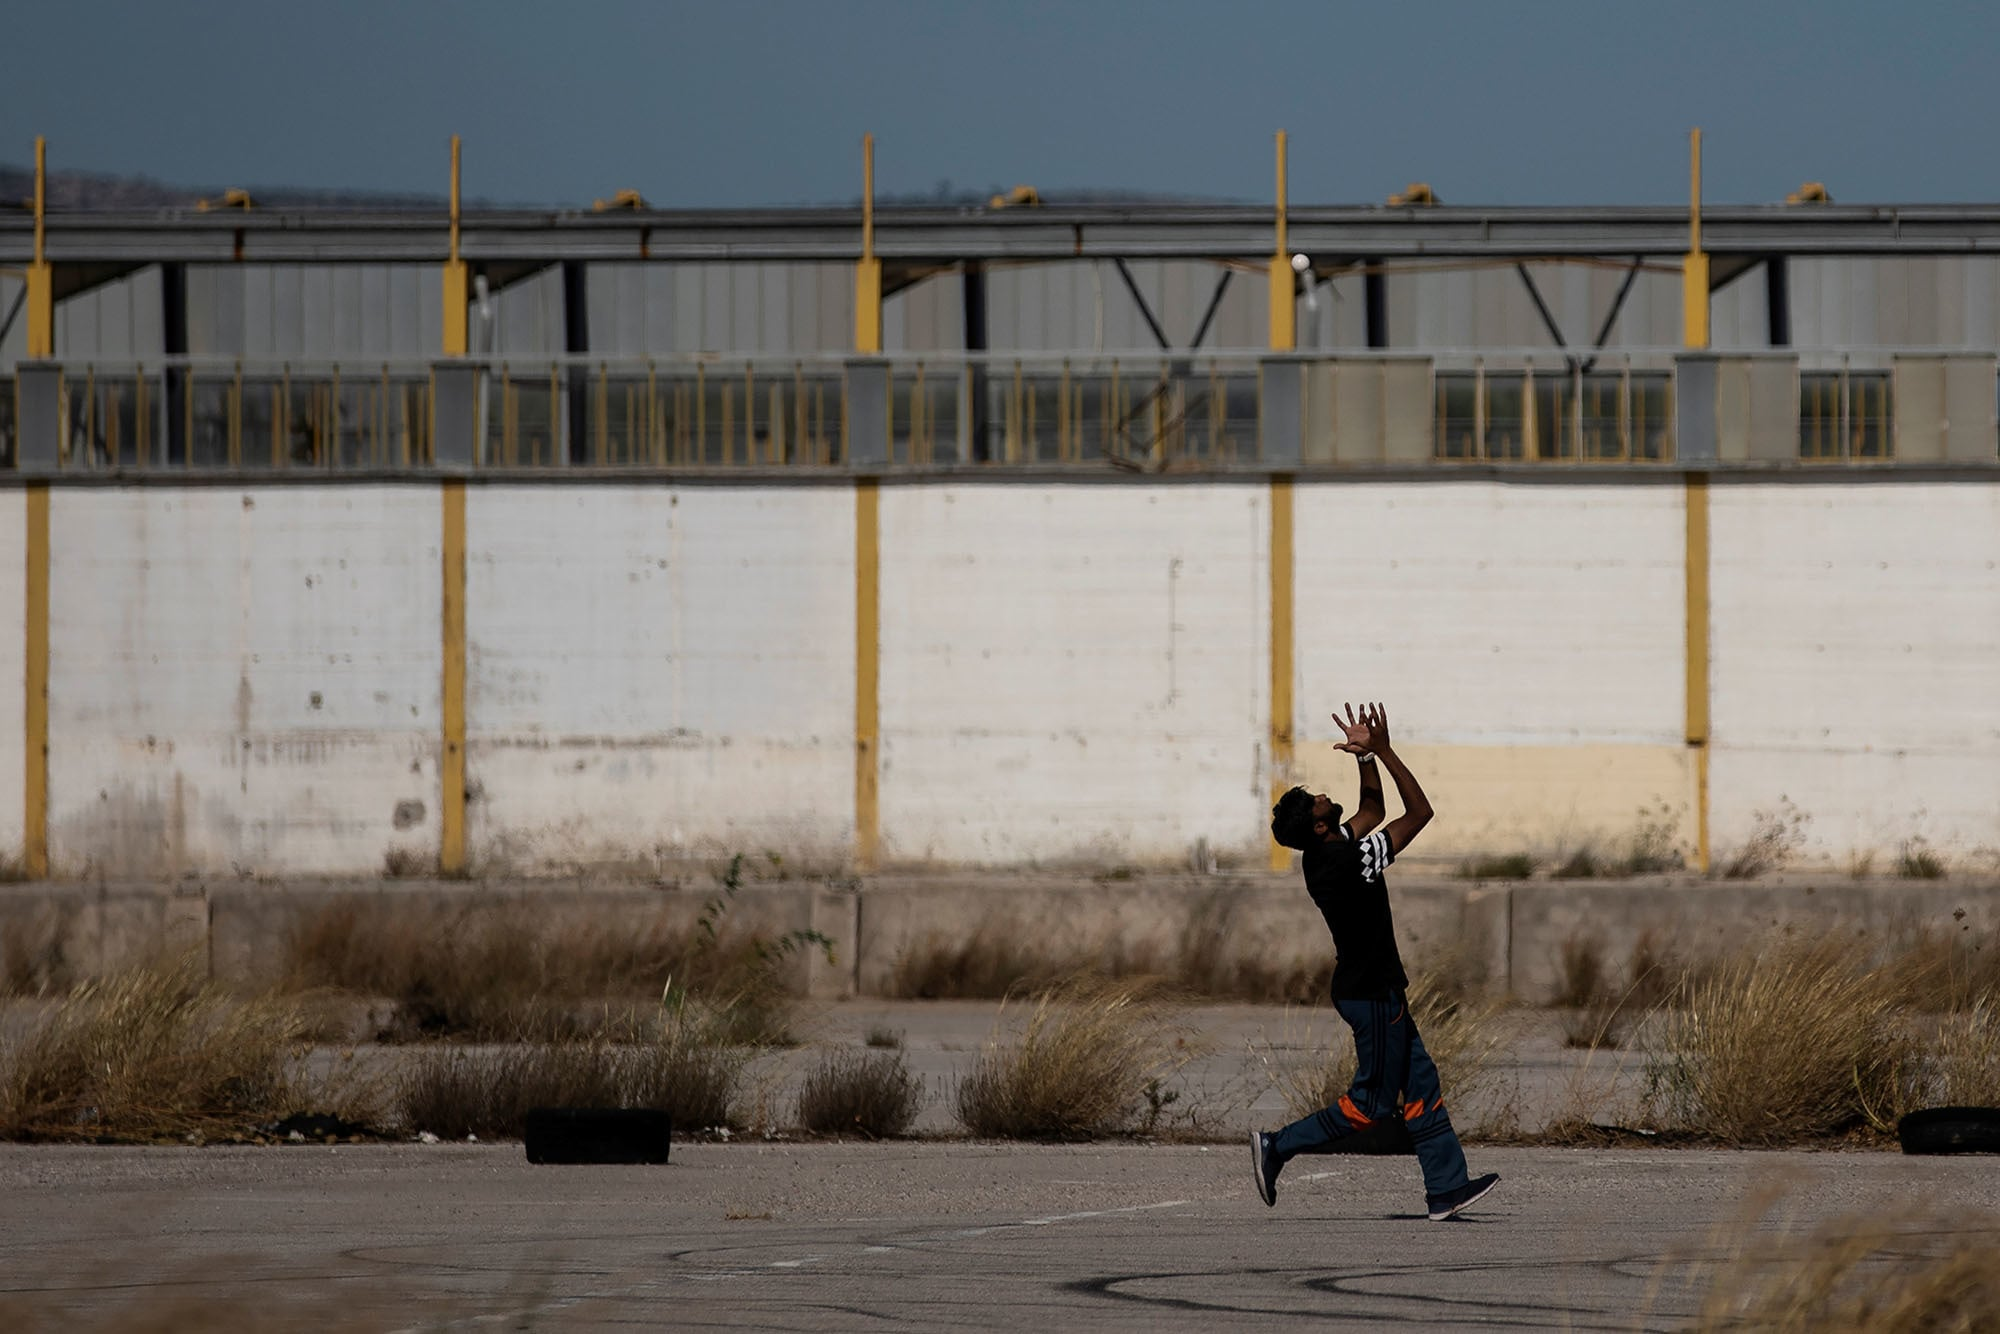 A Pakistani man living in Greece tries to catch the ball during a tape-ball cricket game in a disused parking lot for trucks in an industrial area in Elefsina, Greece on June 30. — Reuters